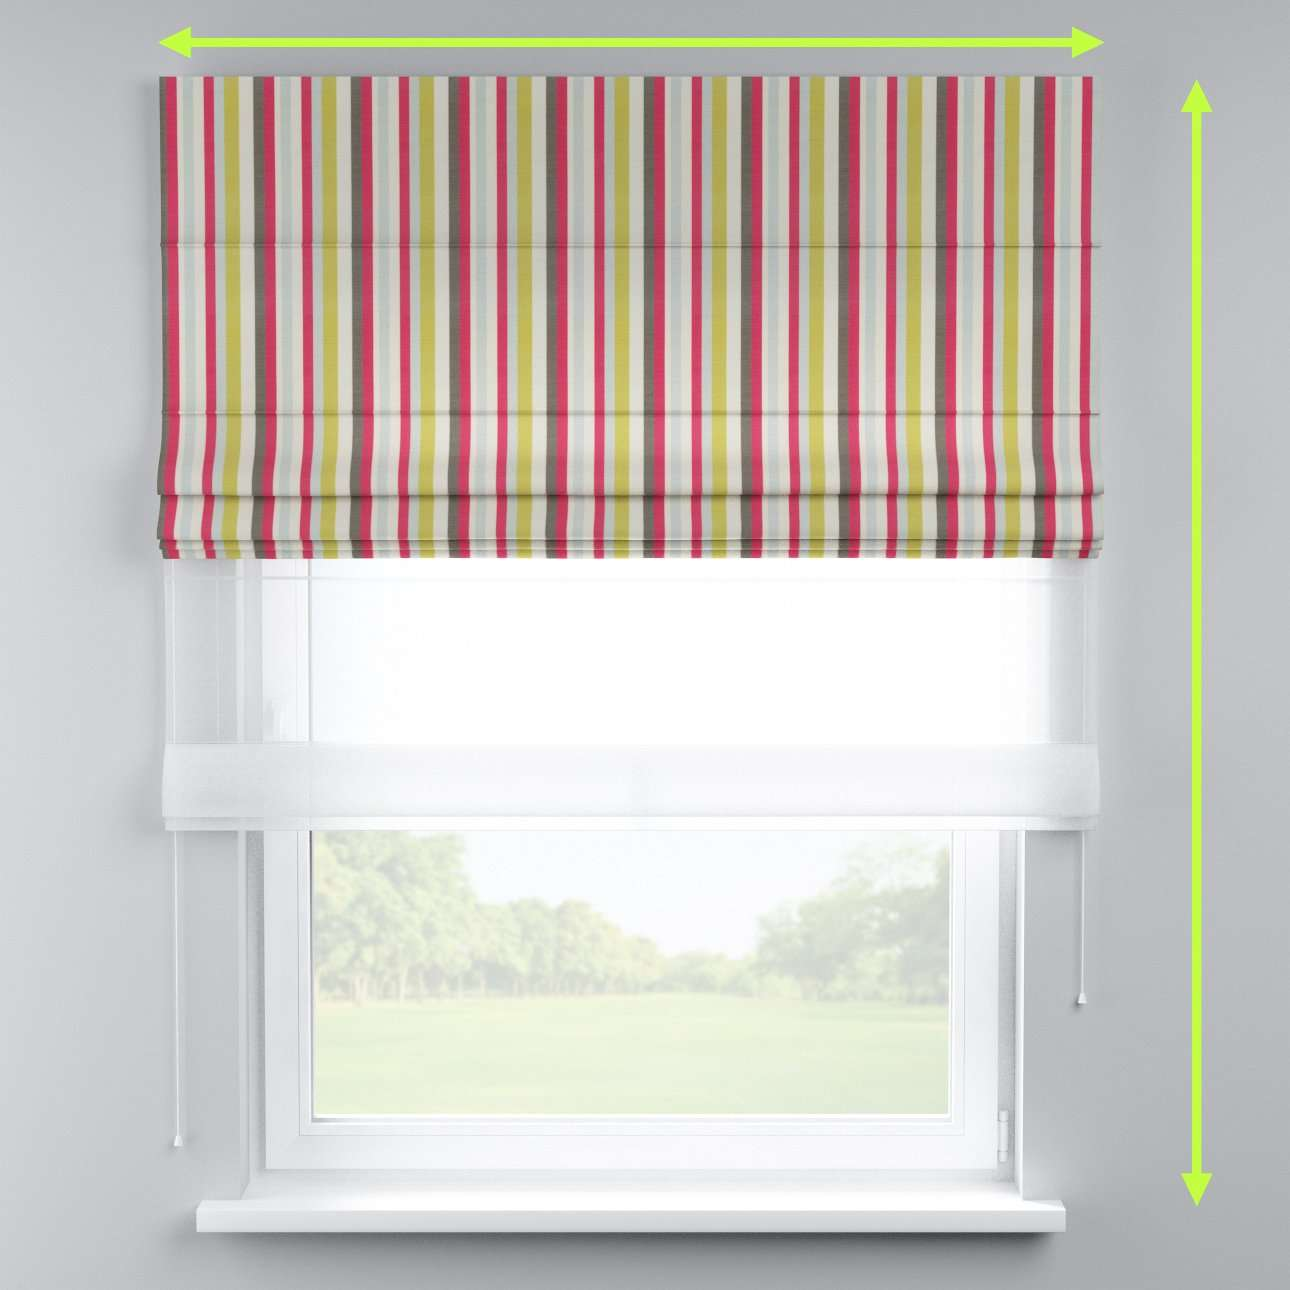 Voile and fabric roman blind (DUO II) in collection Norge, fabric: 140-81